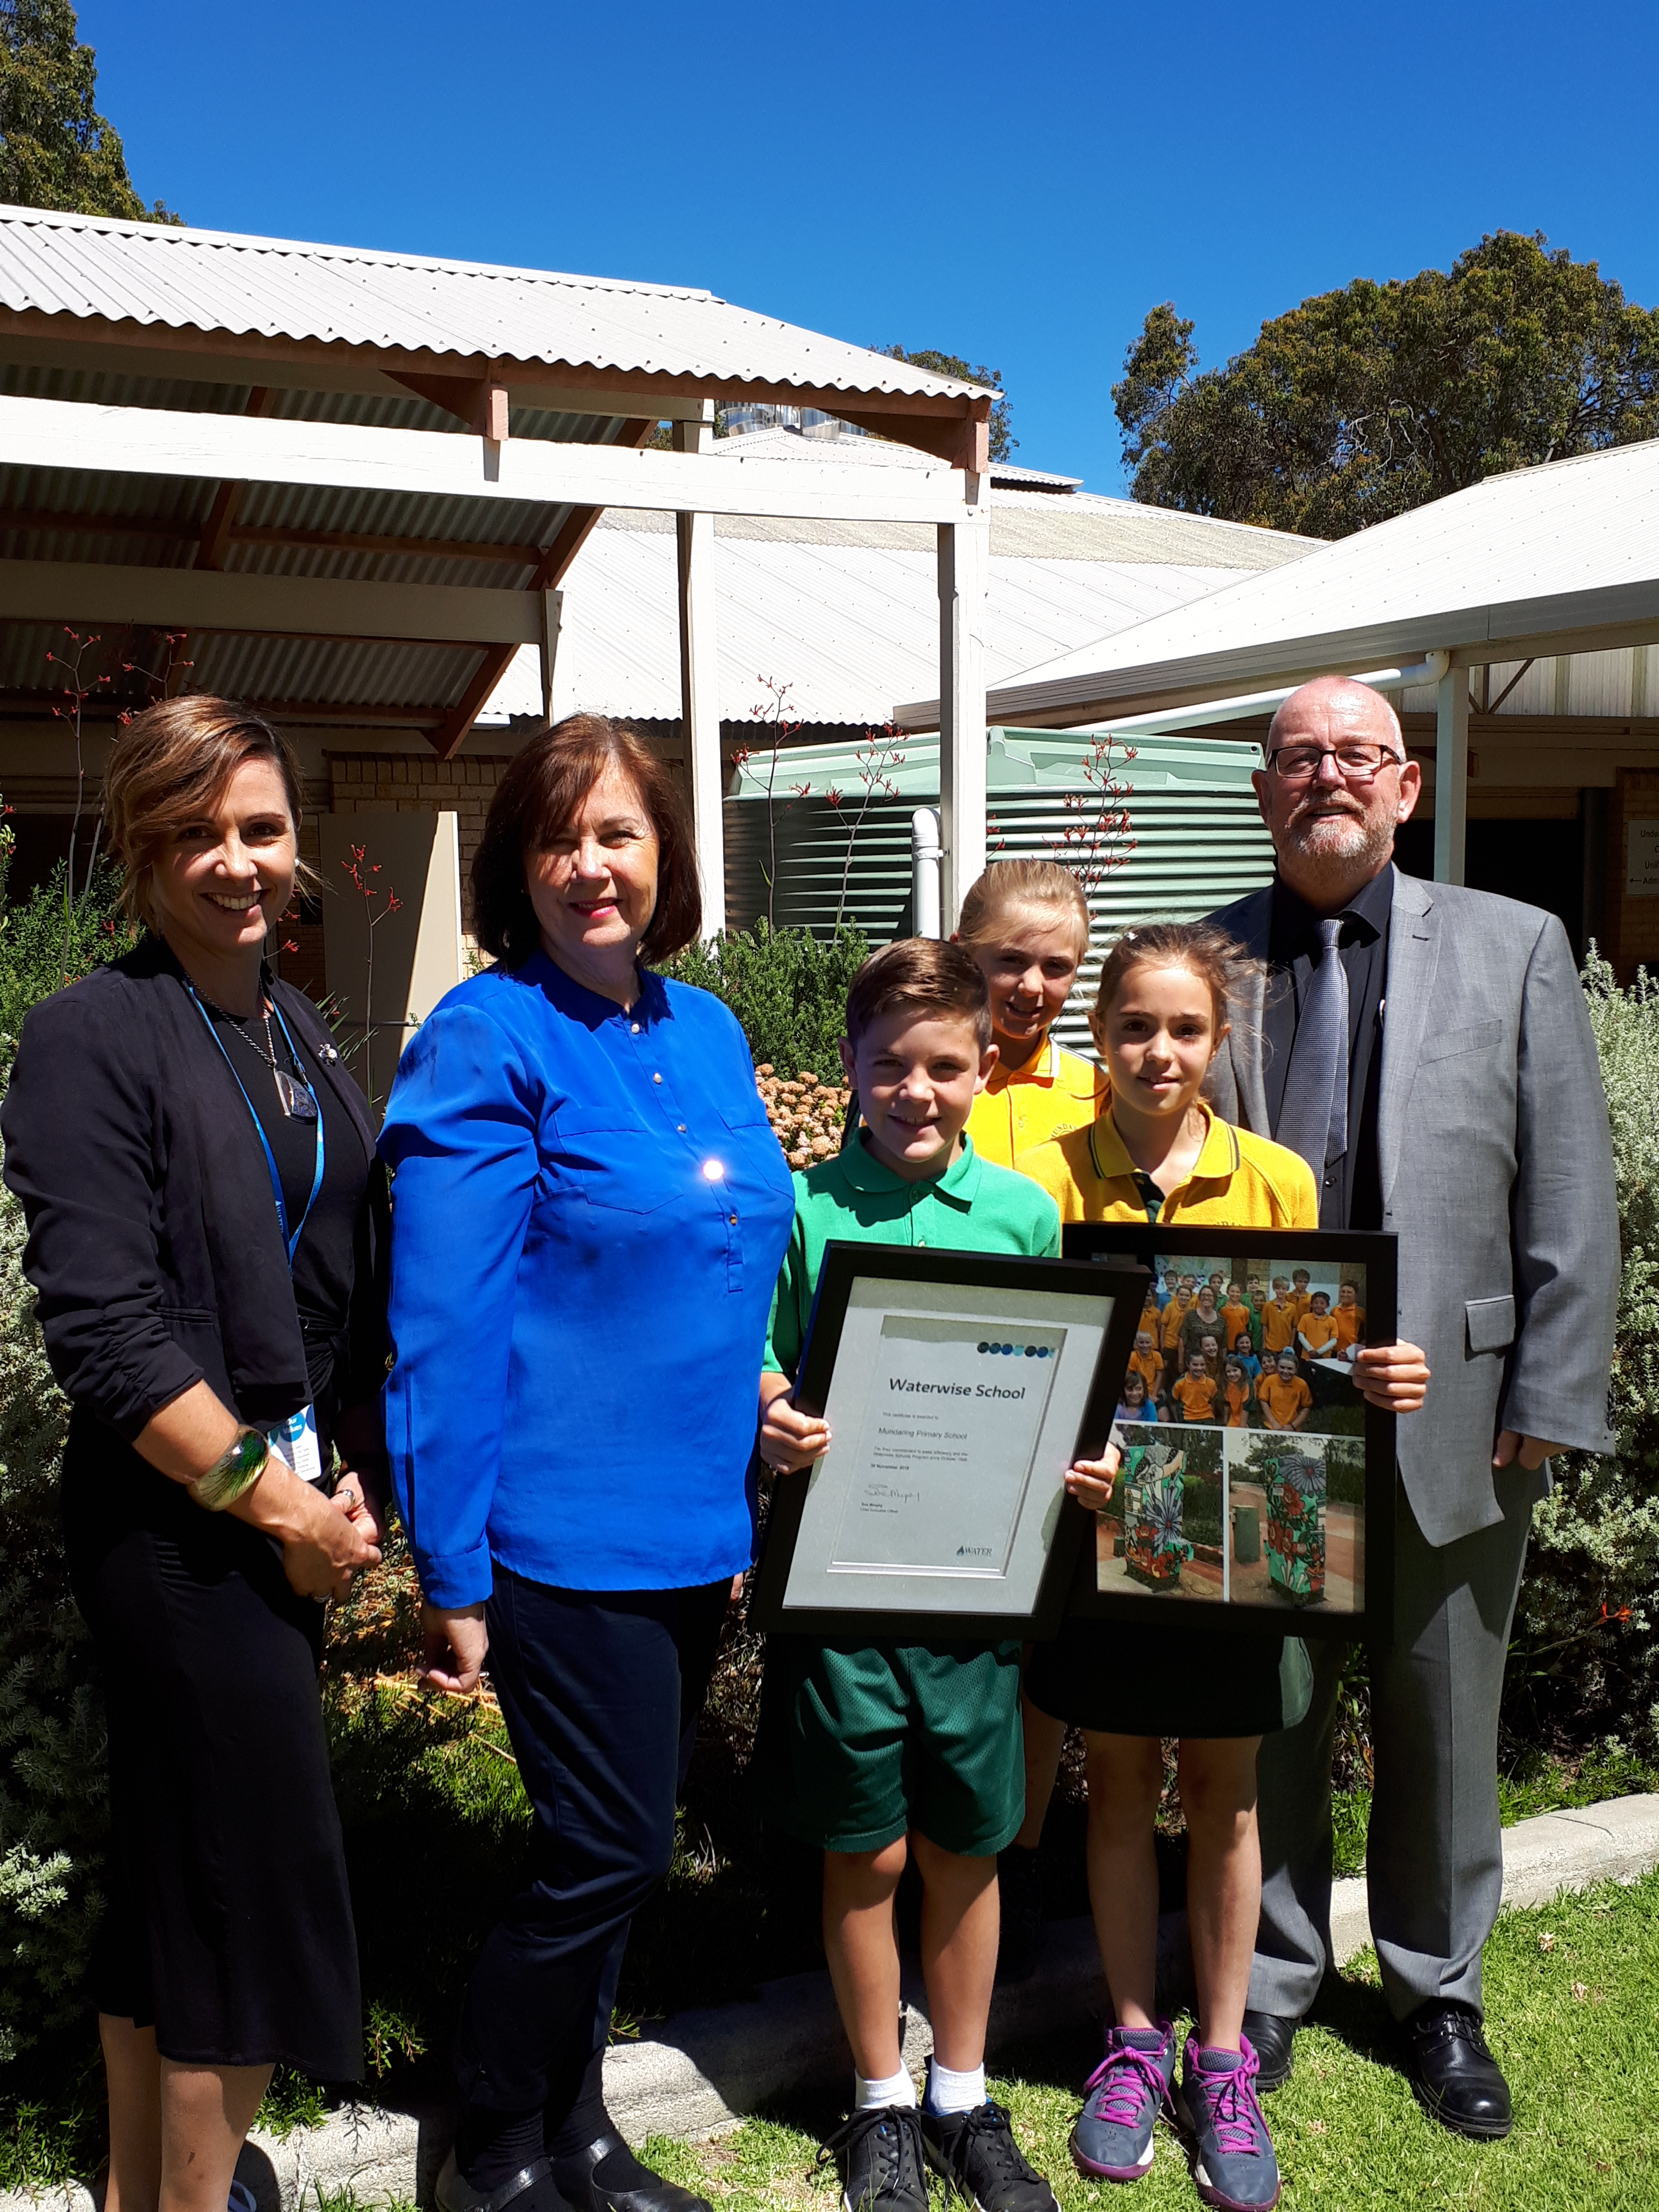 Mundaring Primary School celebrates 20 years of waterwise education